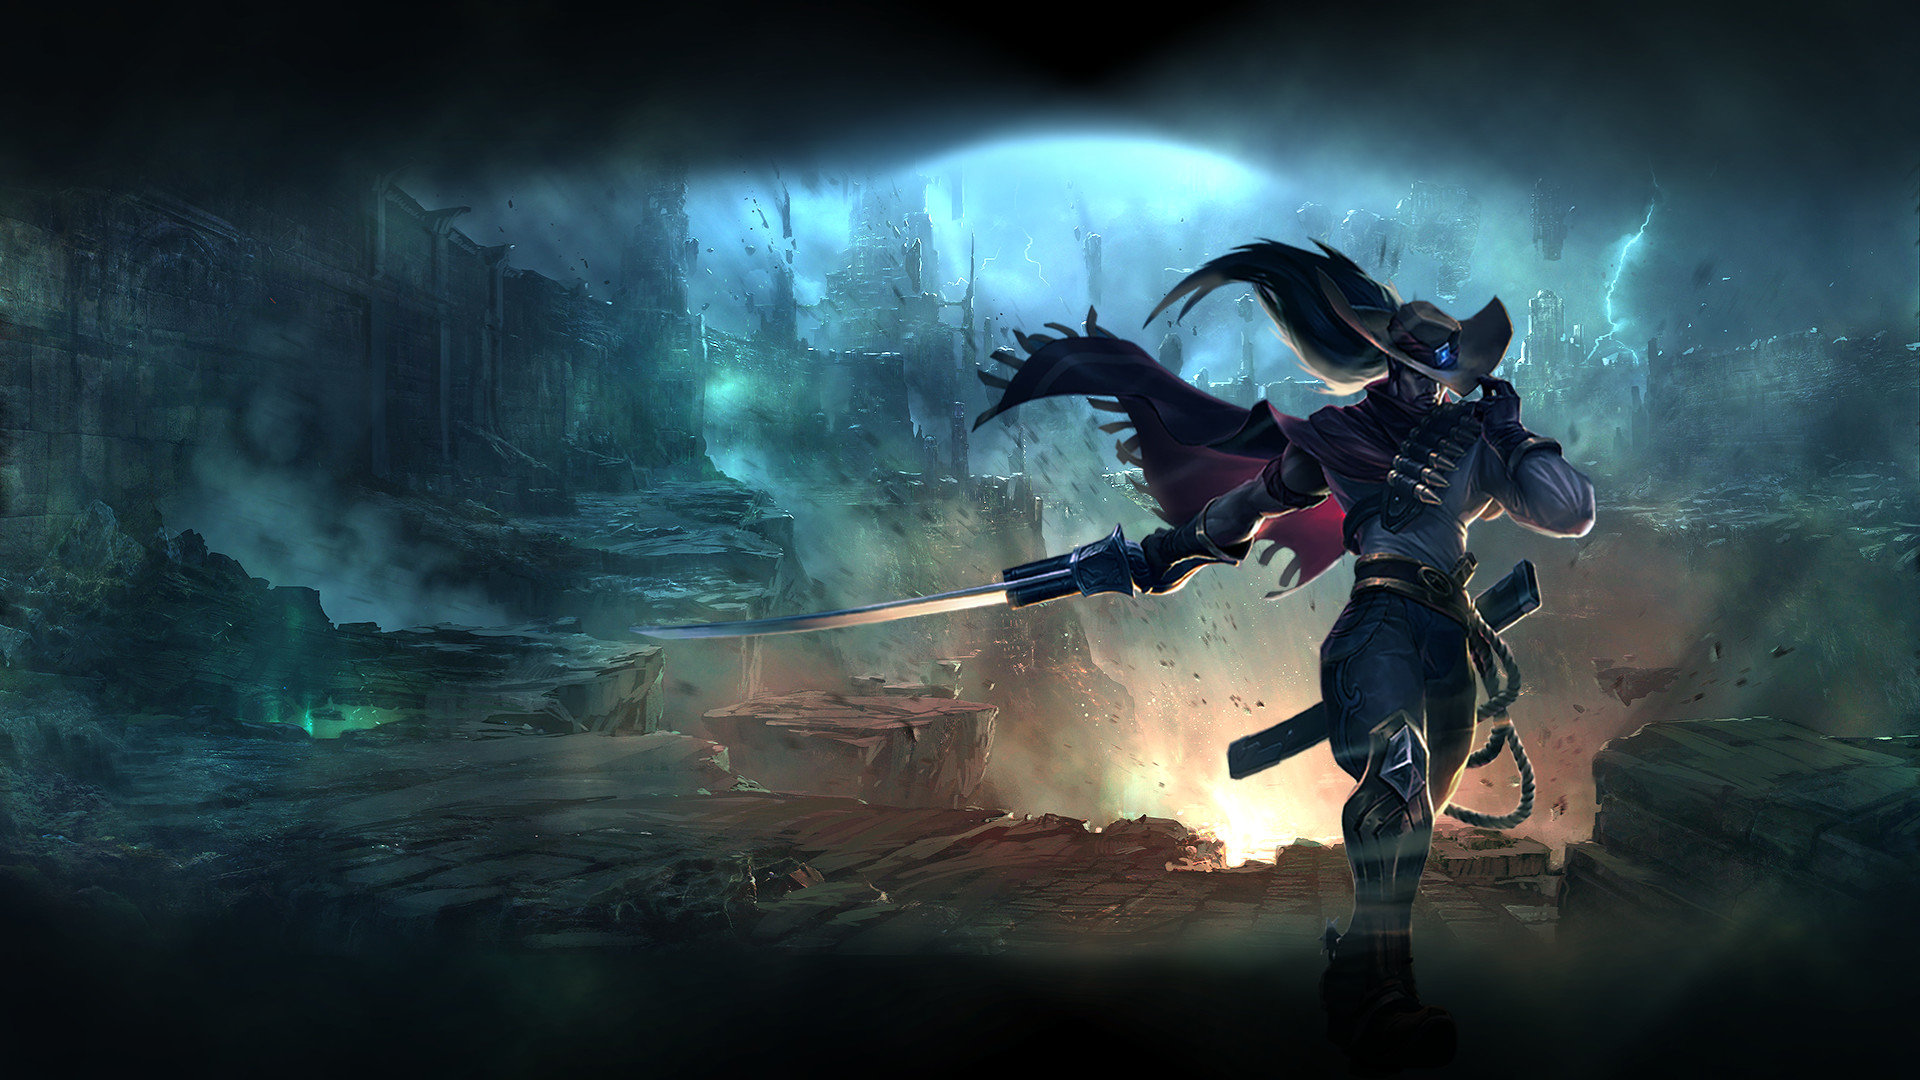 Download Full Hd Yasuo League Of Legends Computer